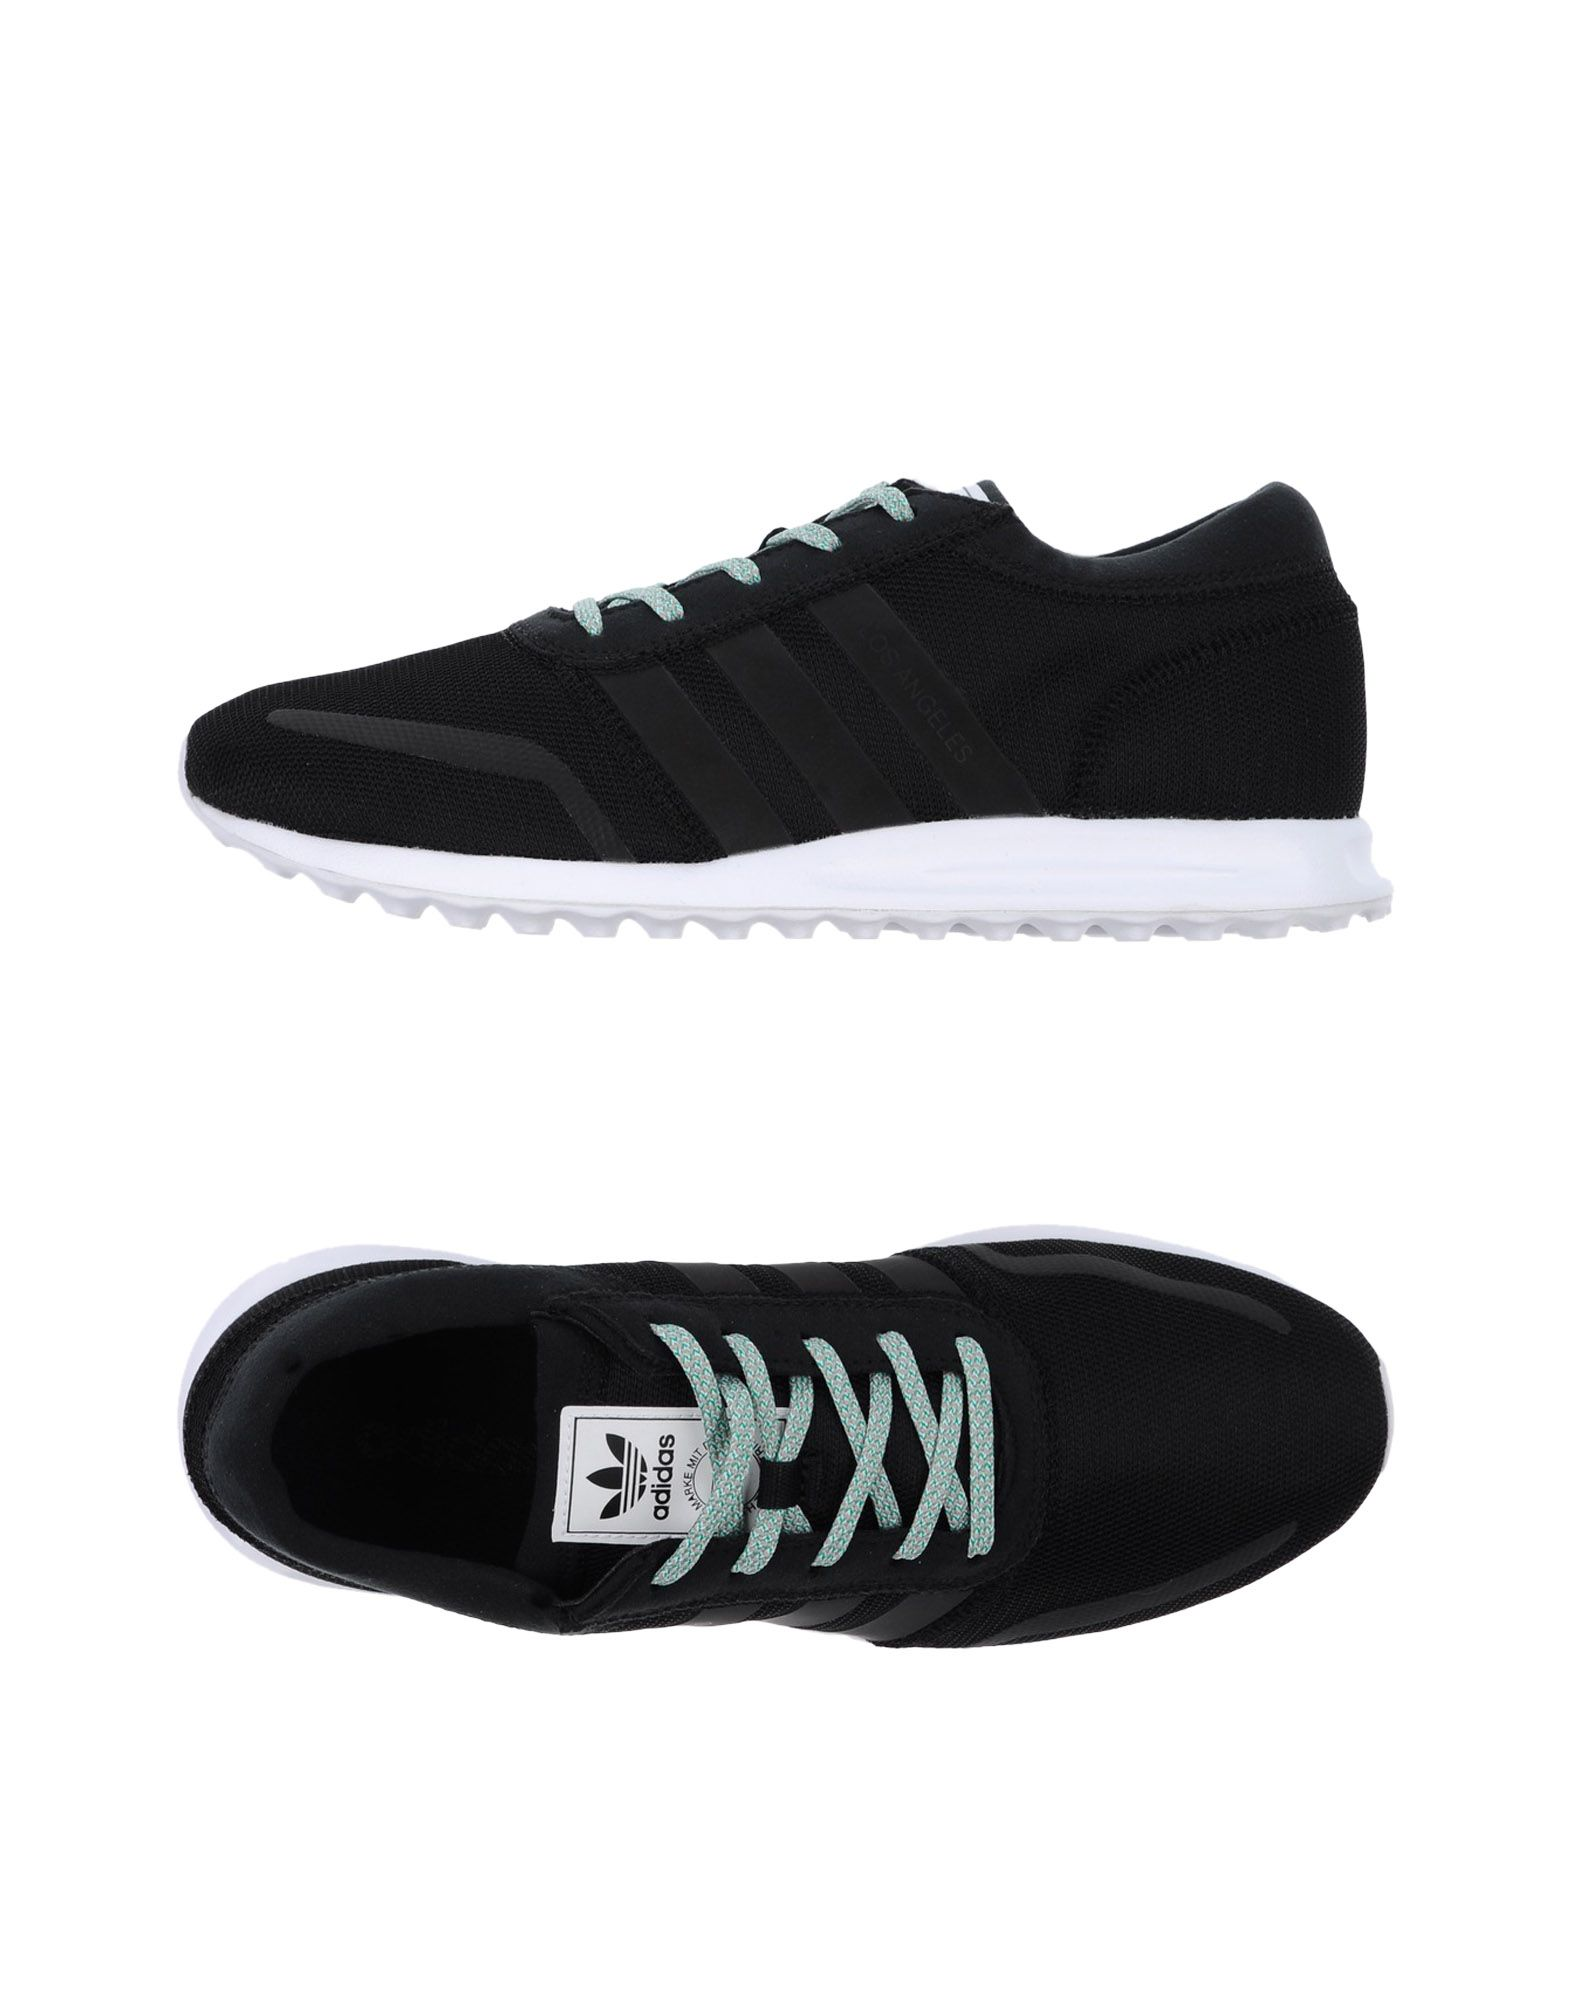 Sneakers Adidas Originals Uomo - 11335311AB